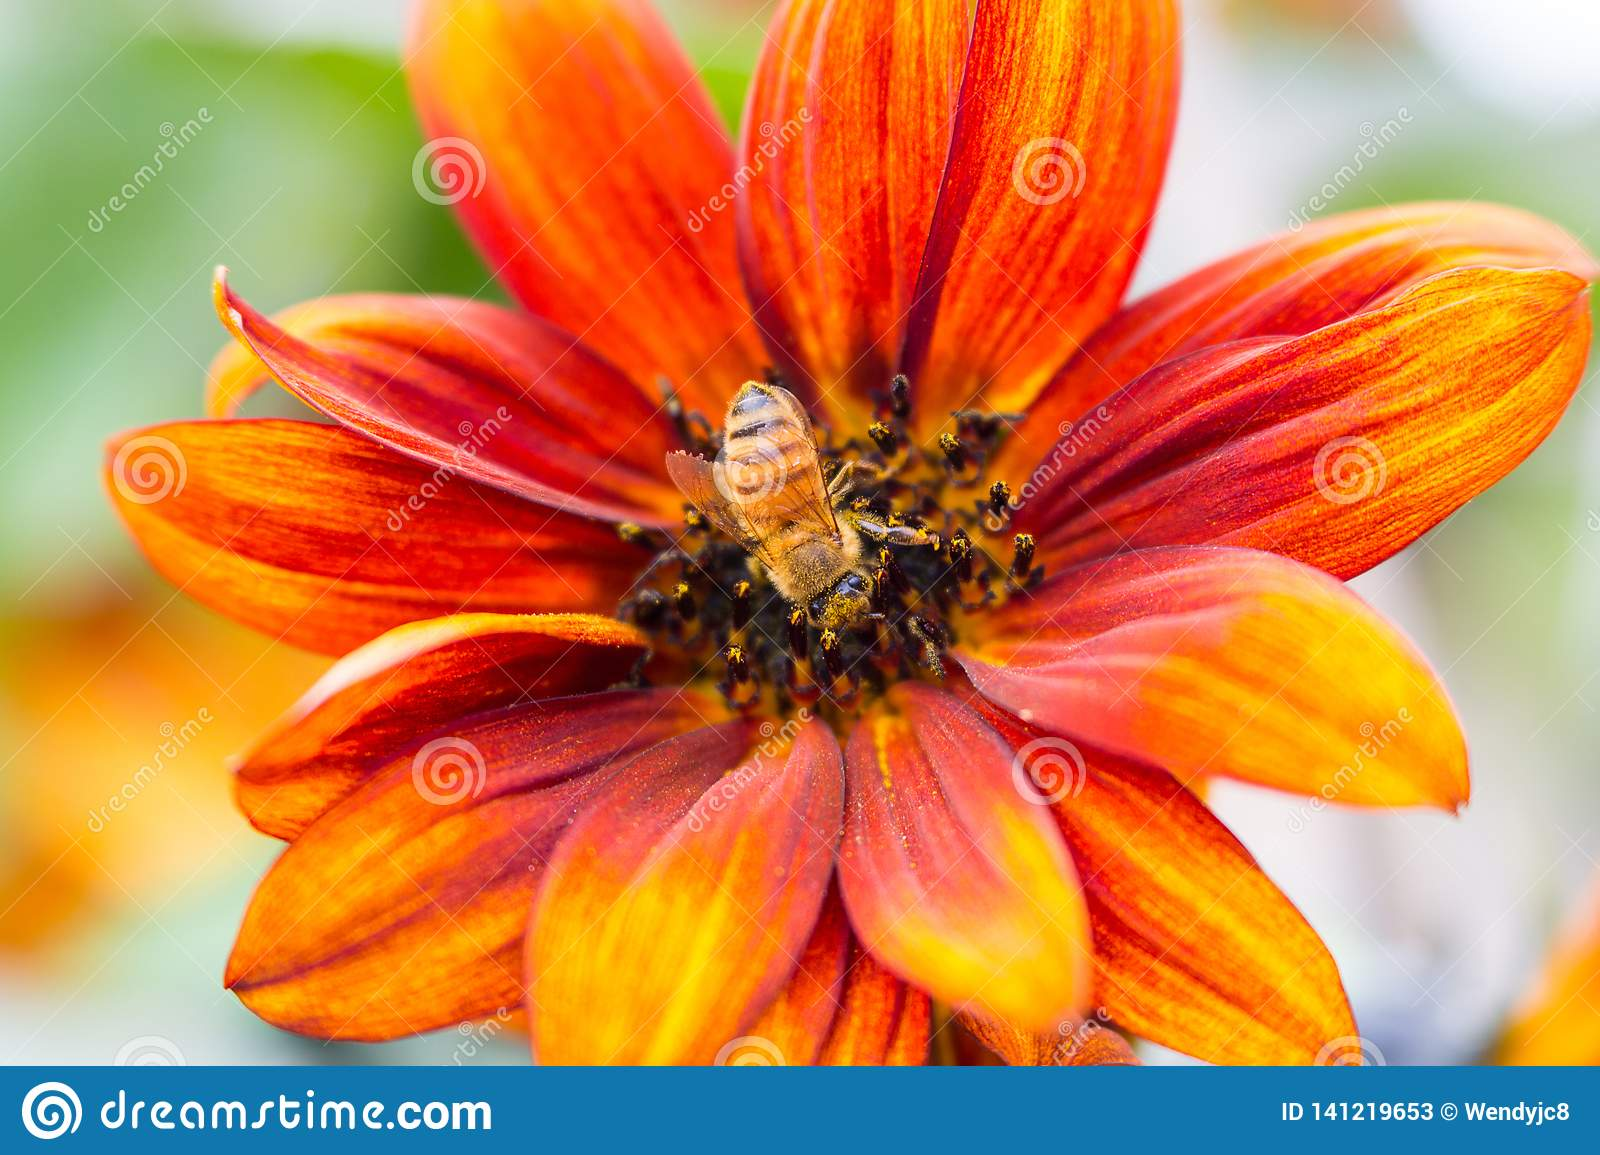 Sunflower with Honey Bee in the centre and some blur